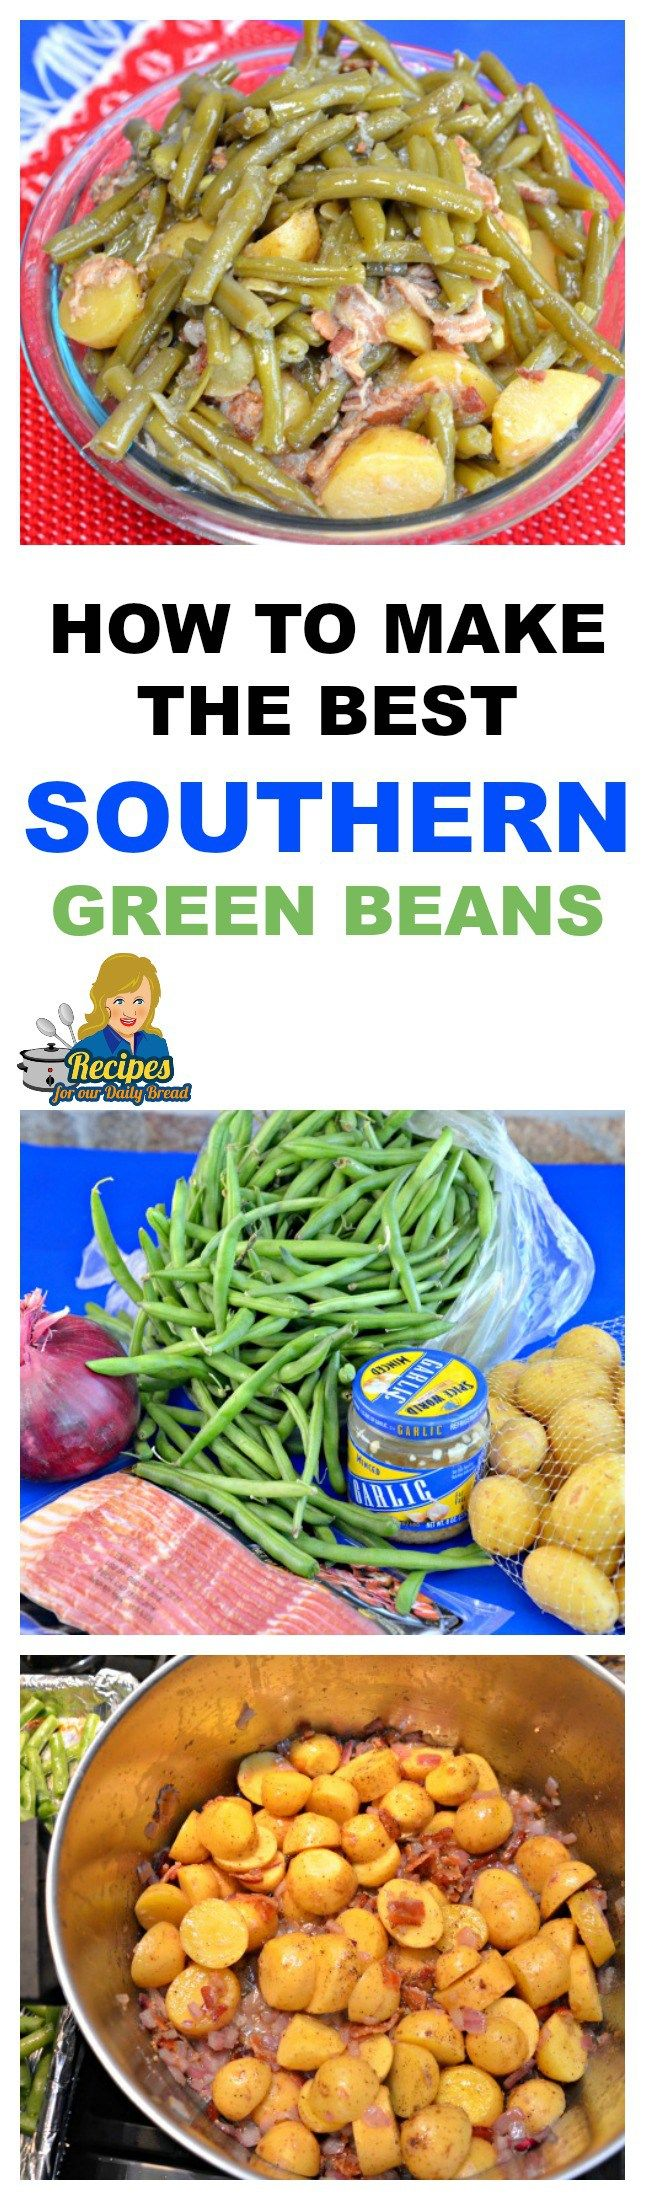 HOW TO MAKE THE BEST SOUTHERN GREEN BEANS  SEE RECIPE HERE: http://recipesforourdailybread.com/best-southern-green-beans/